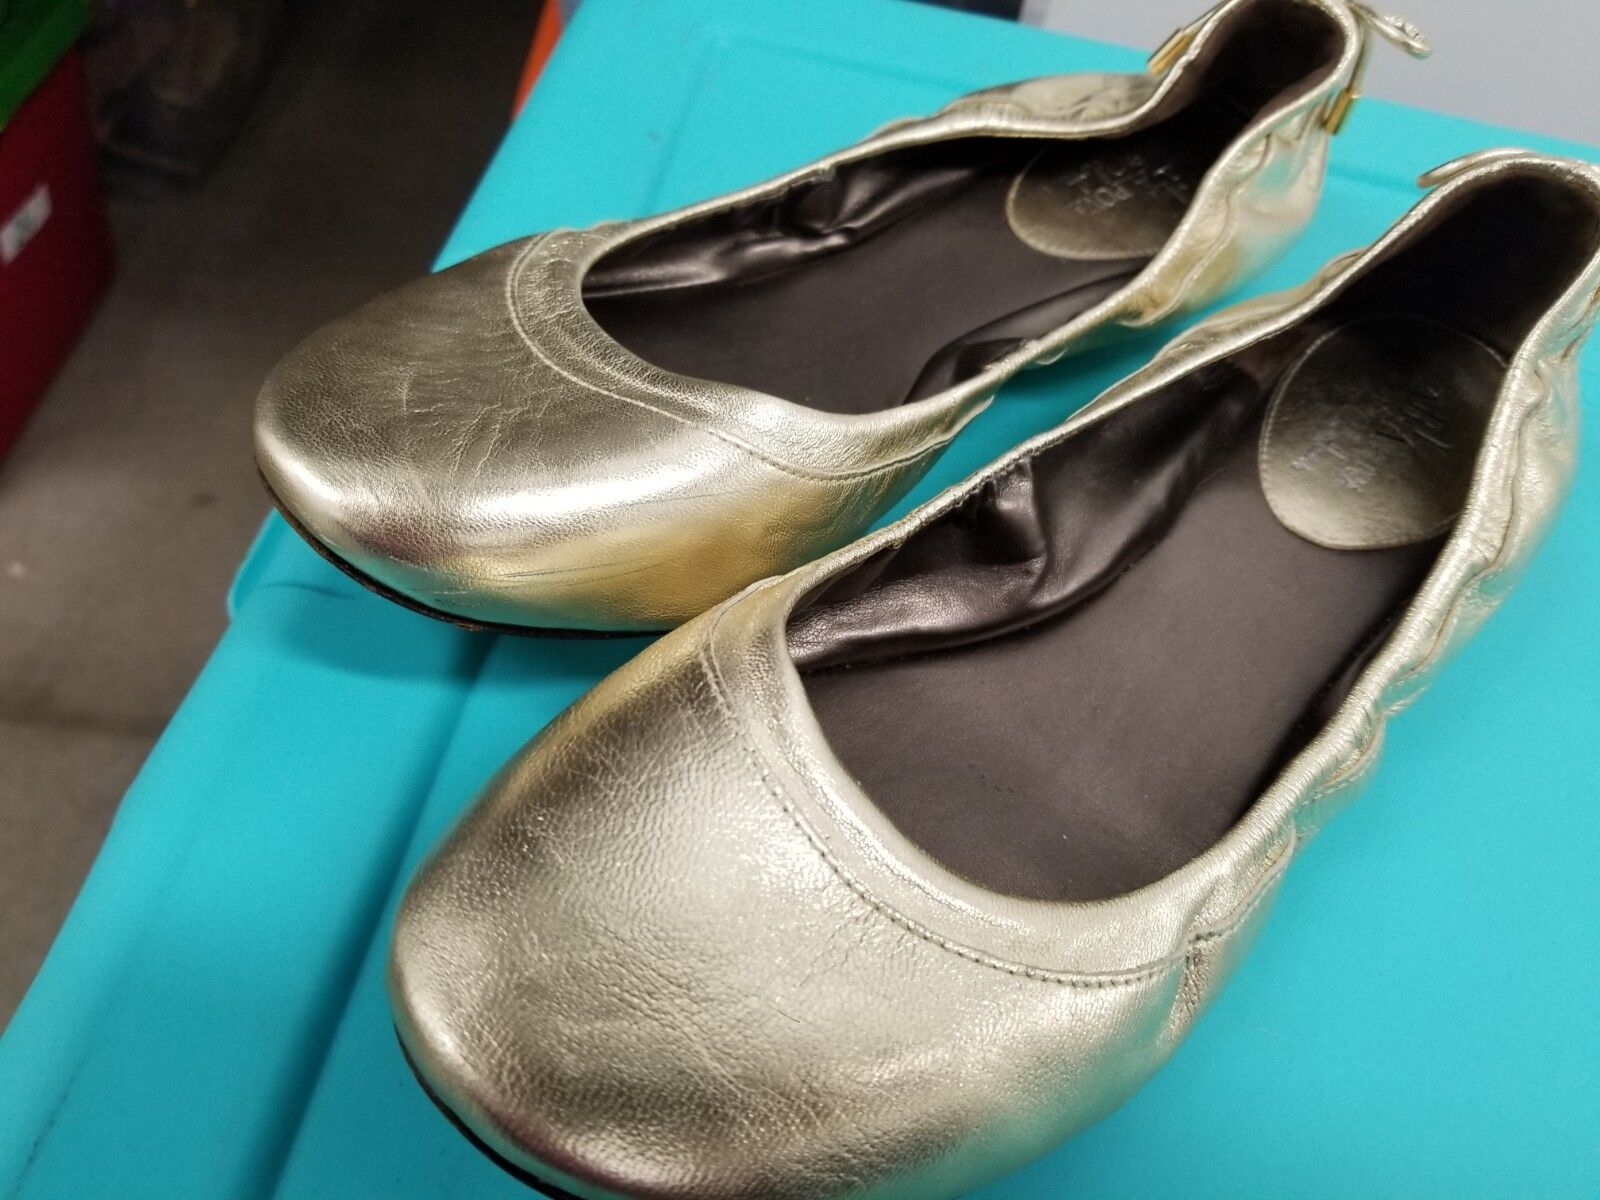 MARIA SHARAPOVA Air sole BACARA shoes by Cole Haan gold Ballet Flats Size 9.5 B